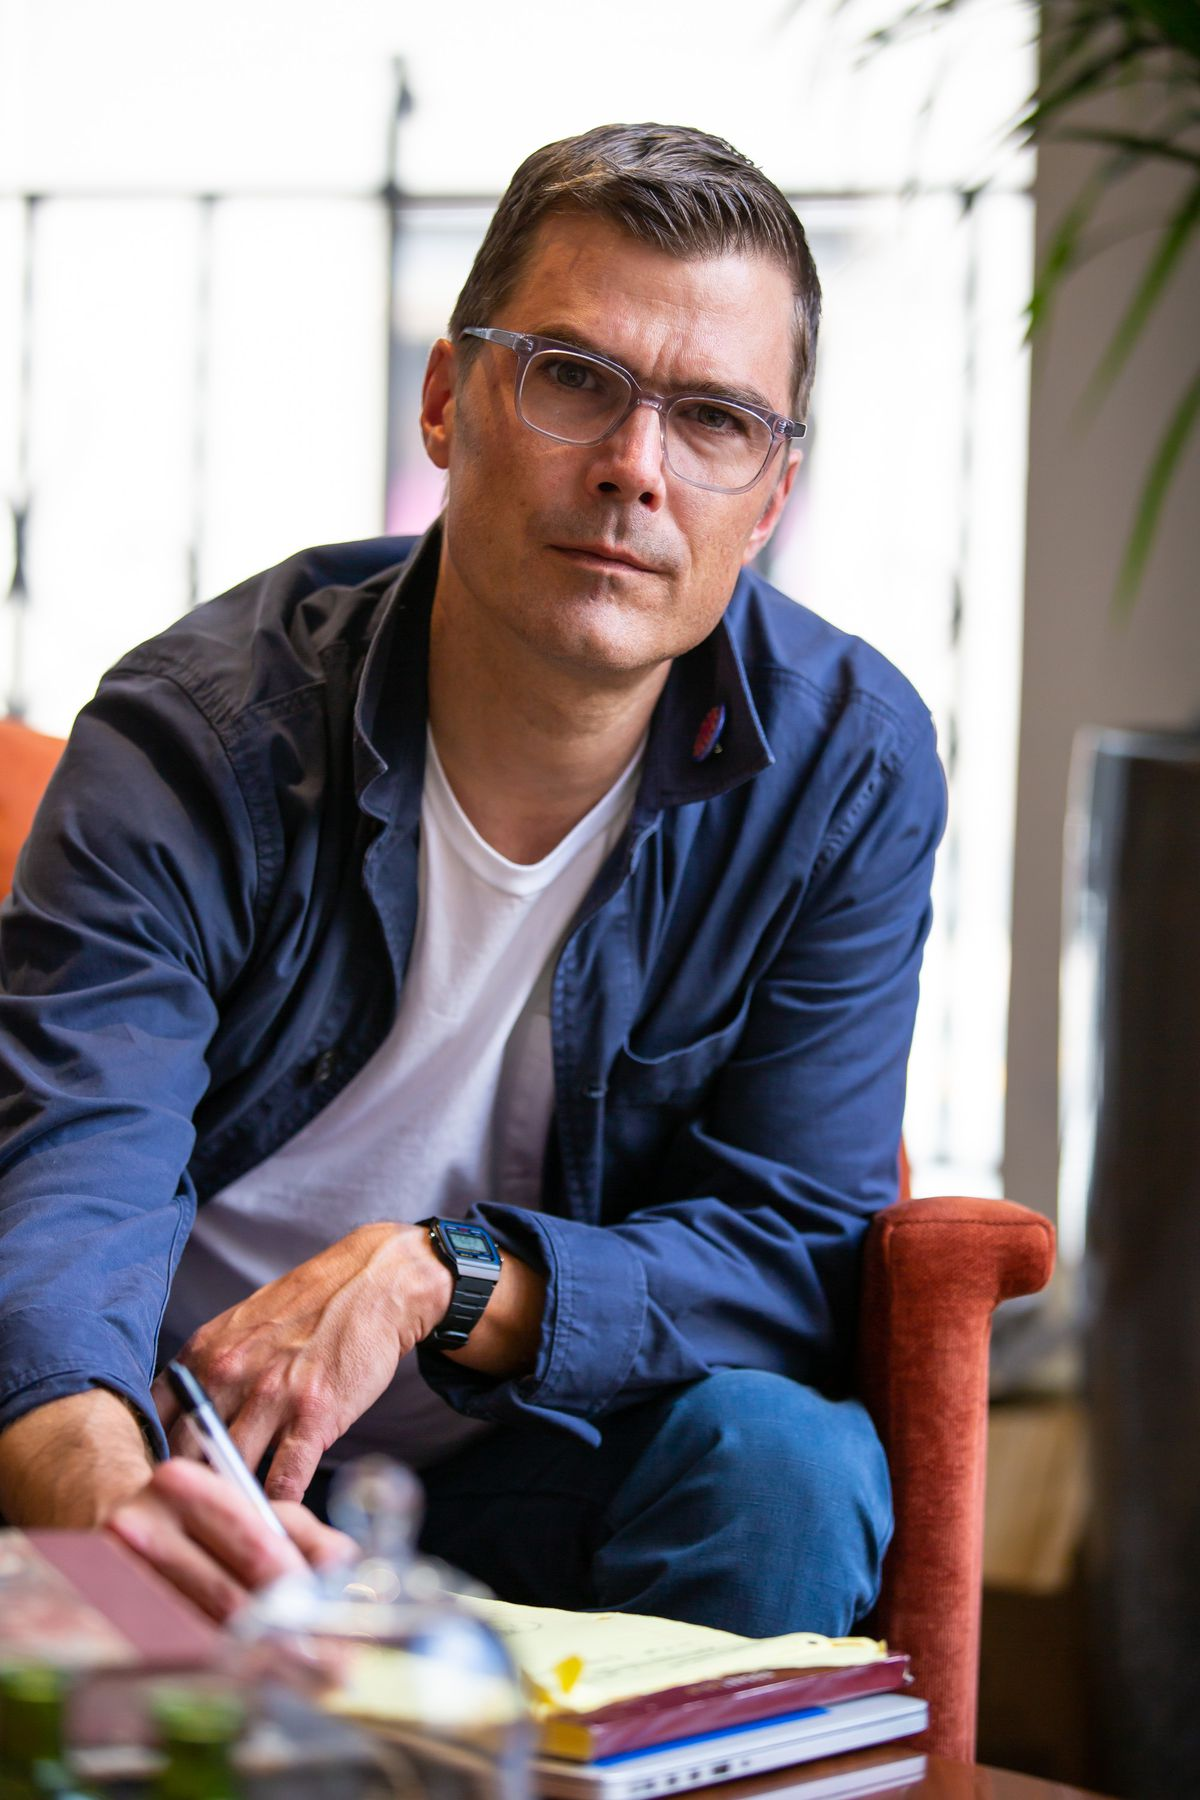 Chef Hugh Acheson wearing glasses and sitting at a table writing